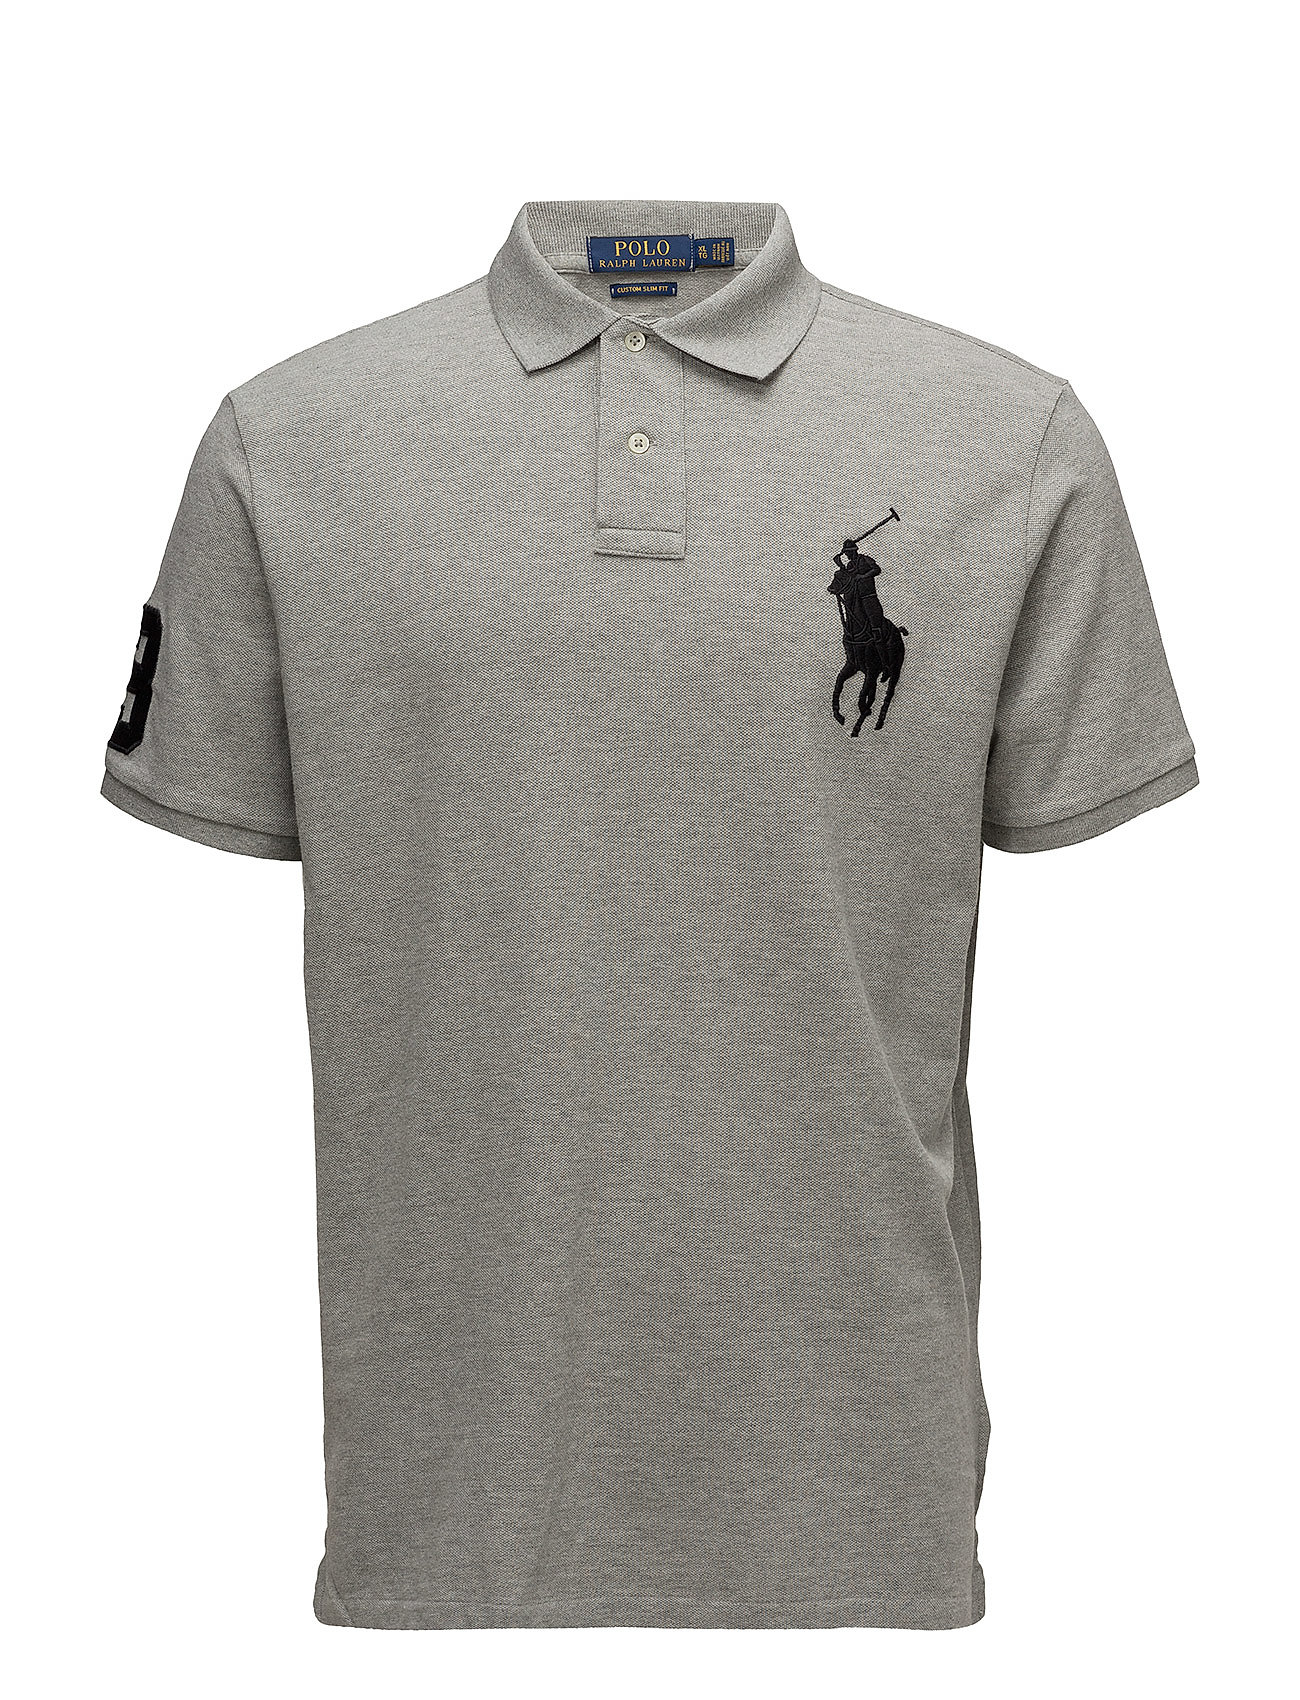 76ef809d0 Custom Slim Fit Mesh Polo (Andover Heather) (£109) - Polo Ralph ...